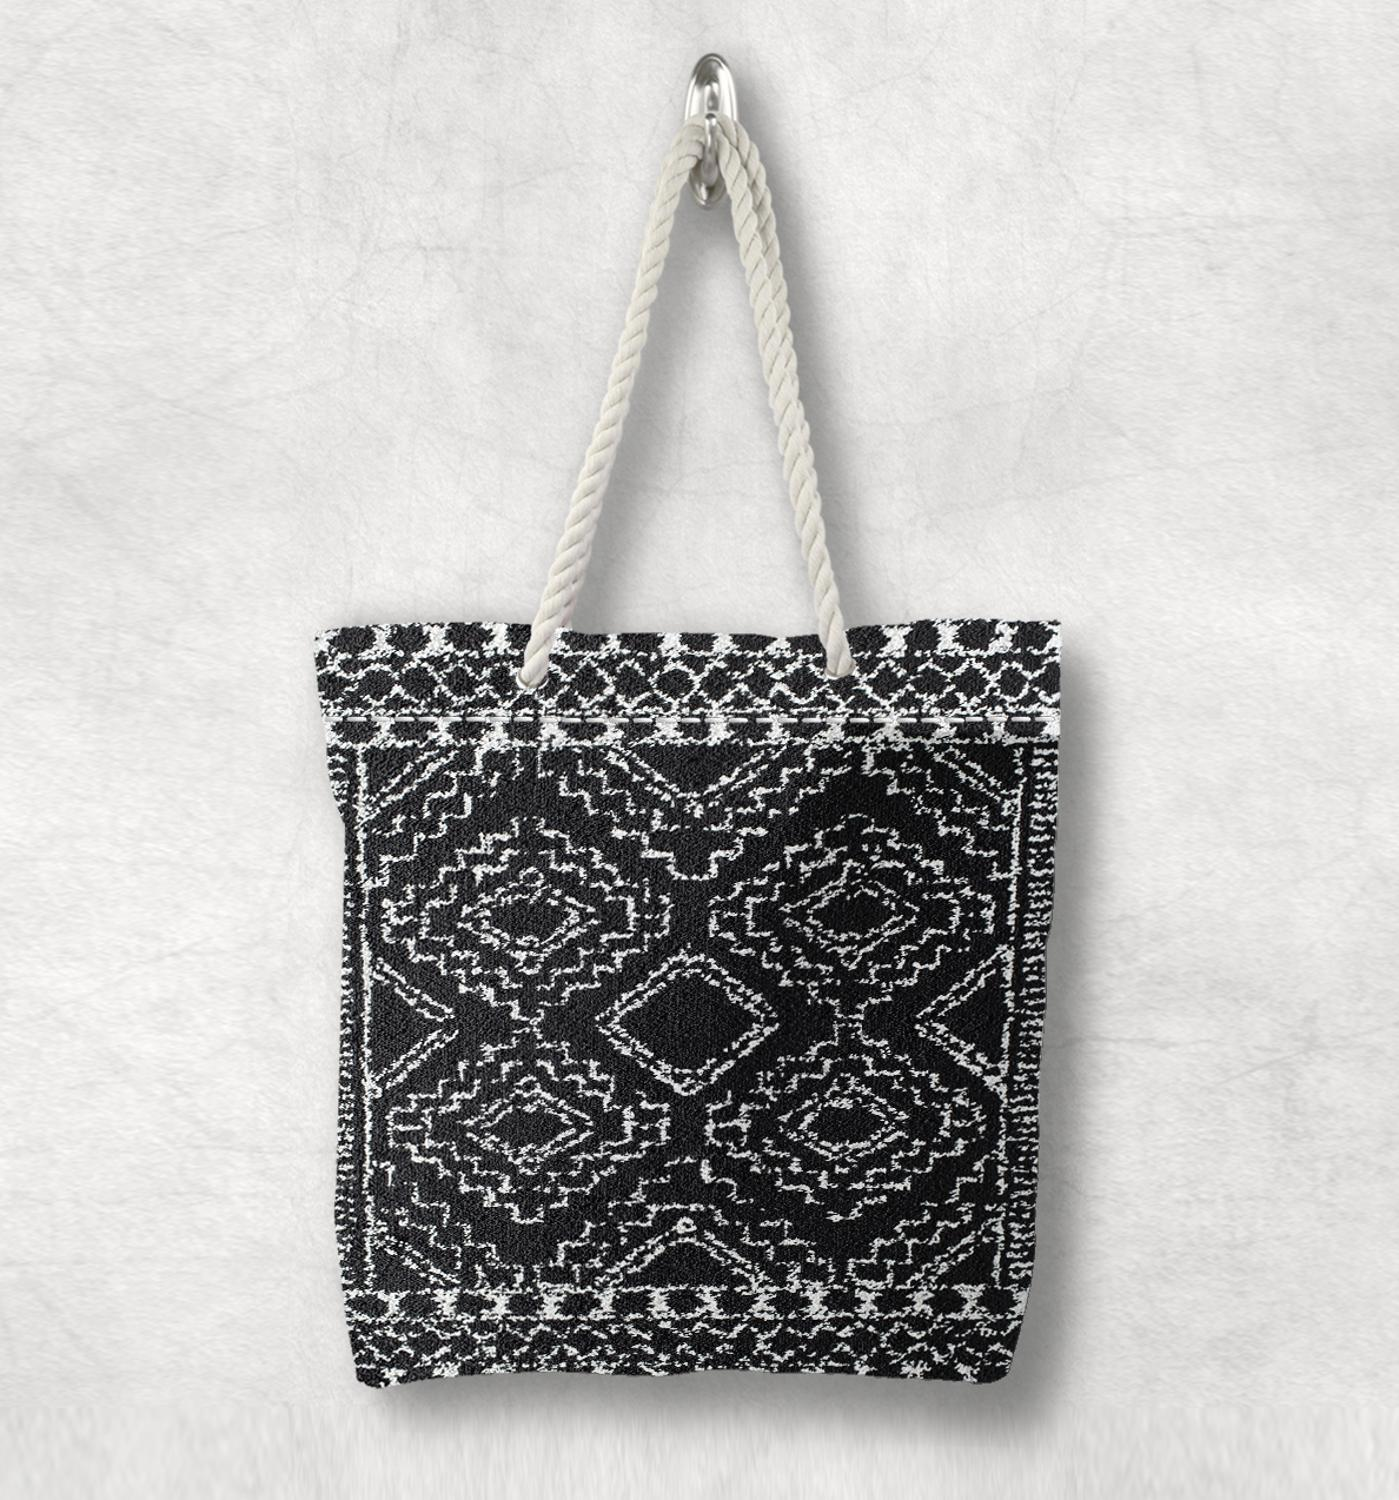 Else Black White Antique Anatolia Turkish Kilim Design White Rope Handle Canvas Bag Cotton Canvas Zippered Tote Bag Shoulder Bag